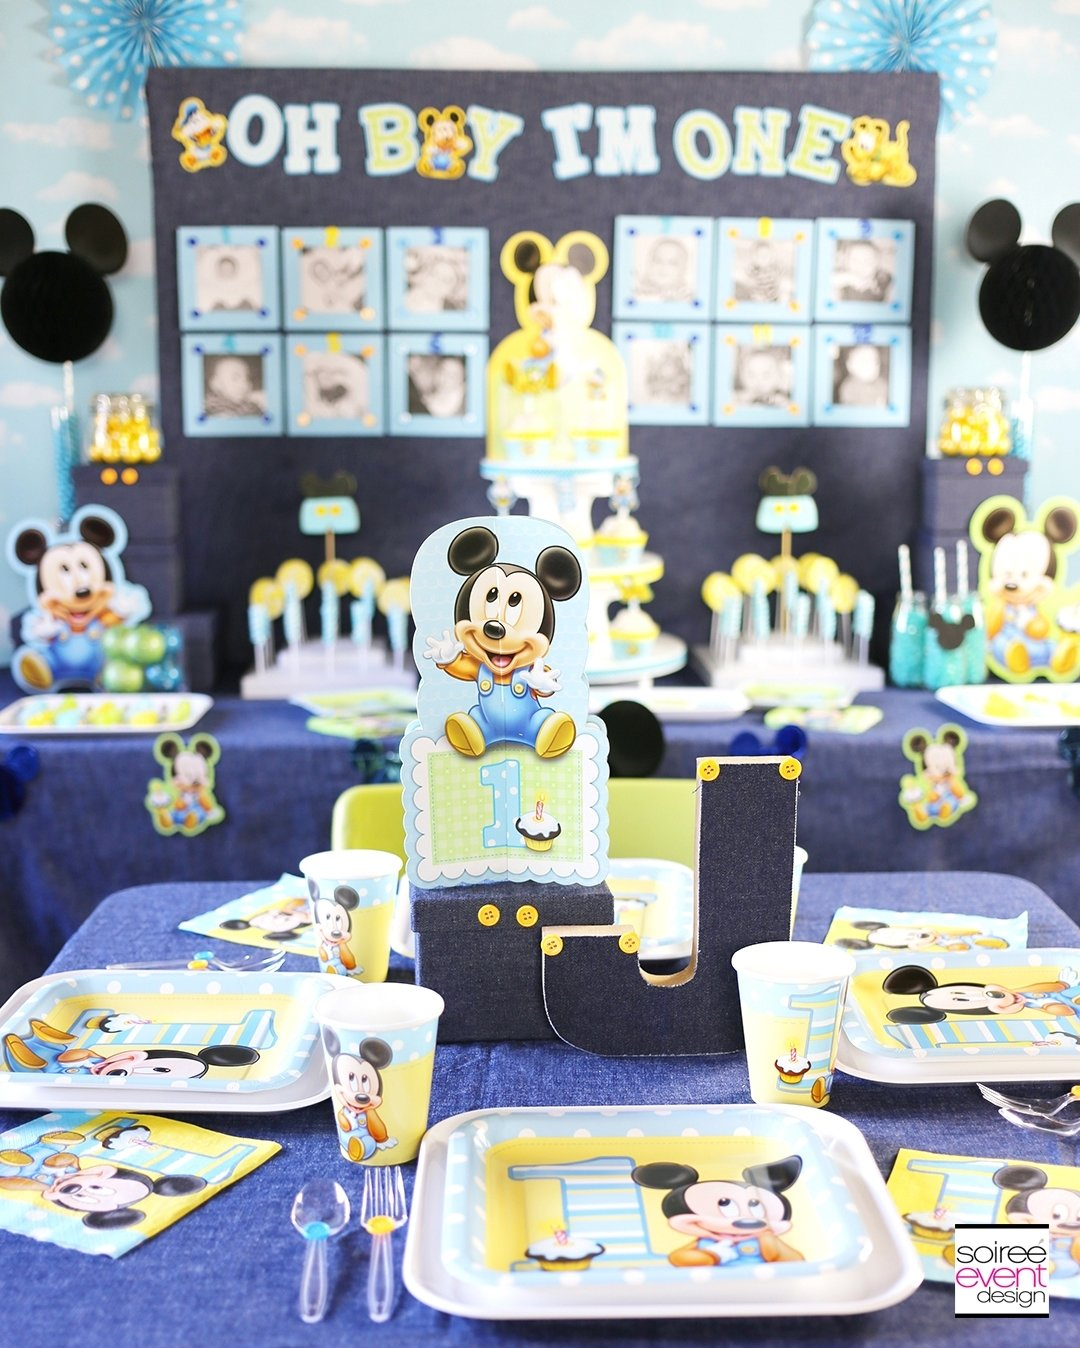 10 Most Recommended Ideas For 1 Year Old Birthday nonsensical 1 year old birthday party game ideas themes together 2 2020